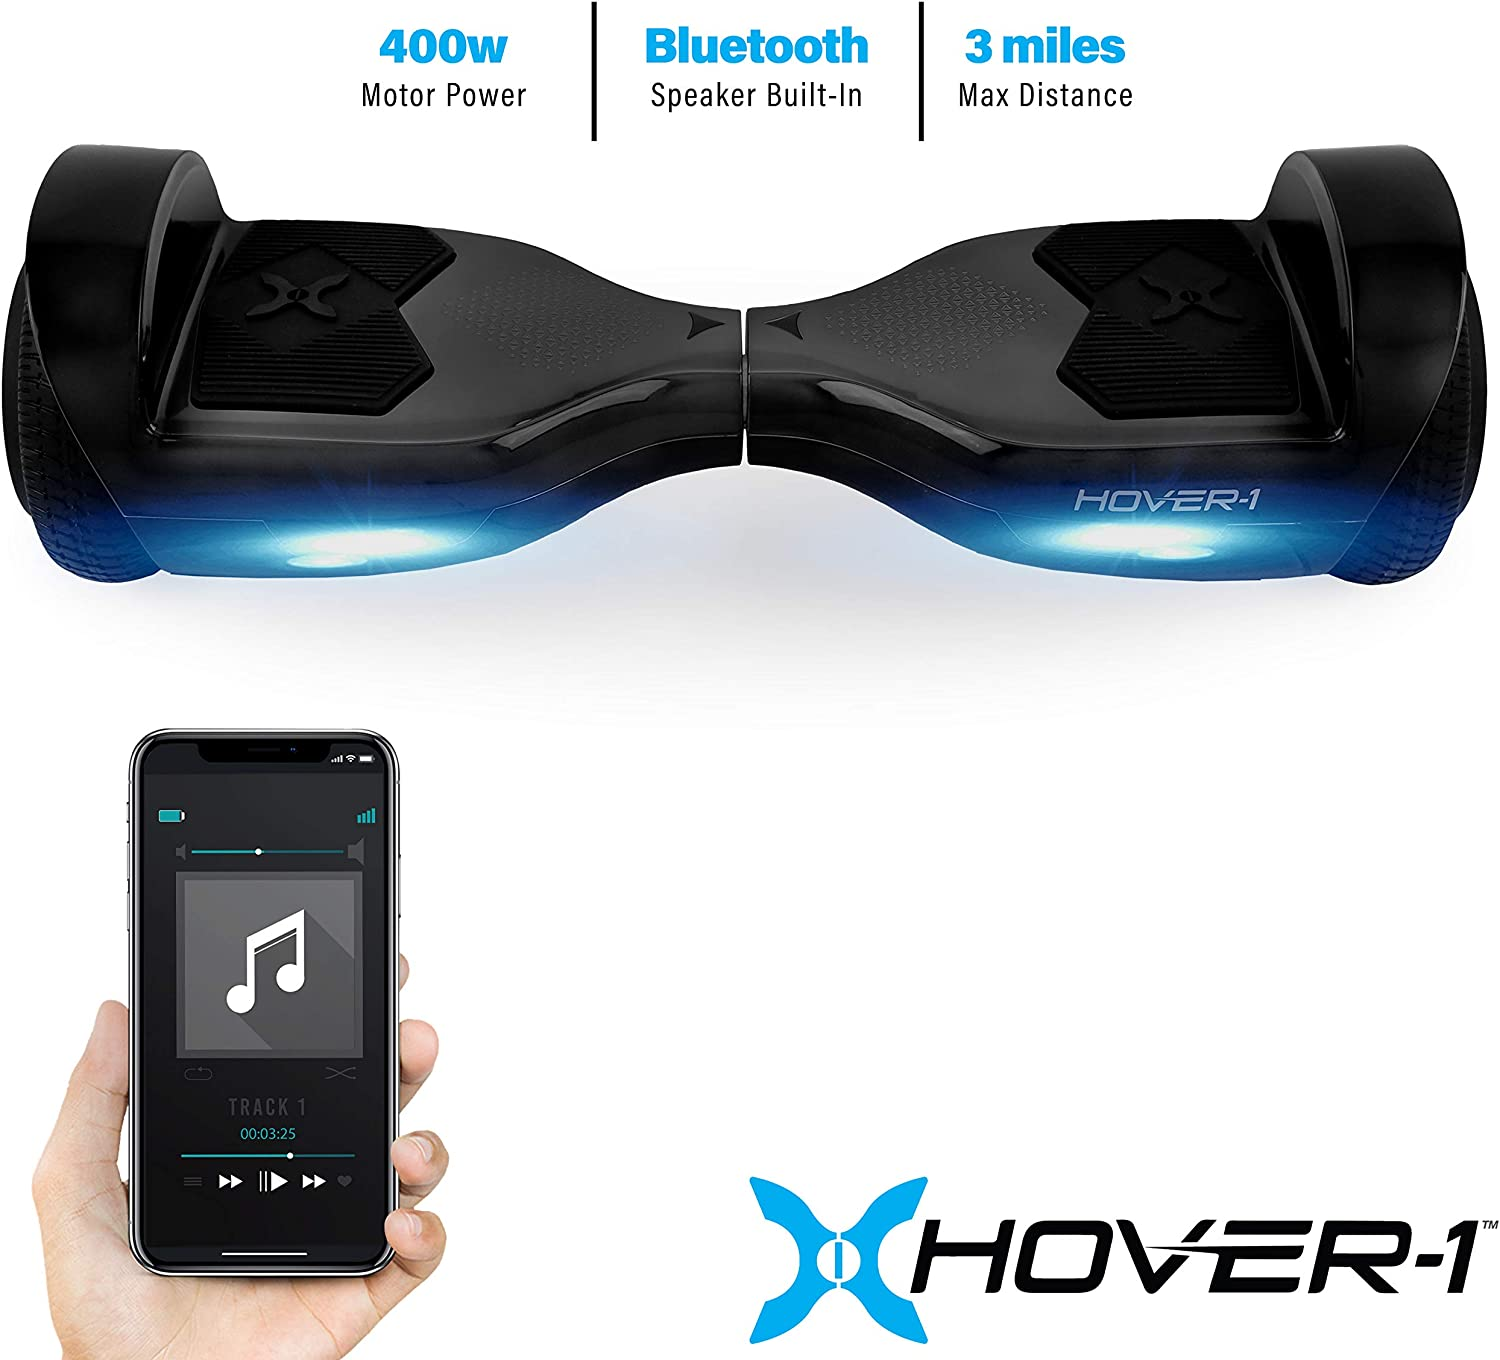 Amazon.com: Hover-1 Helix Electric Hoverboard Scooter, Black ...